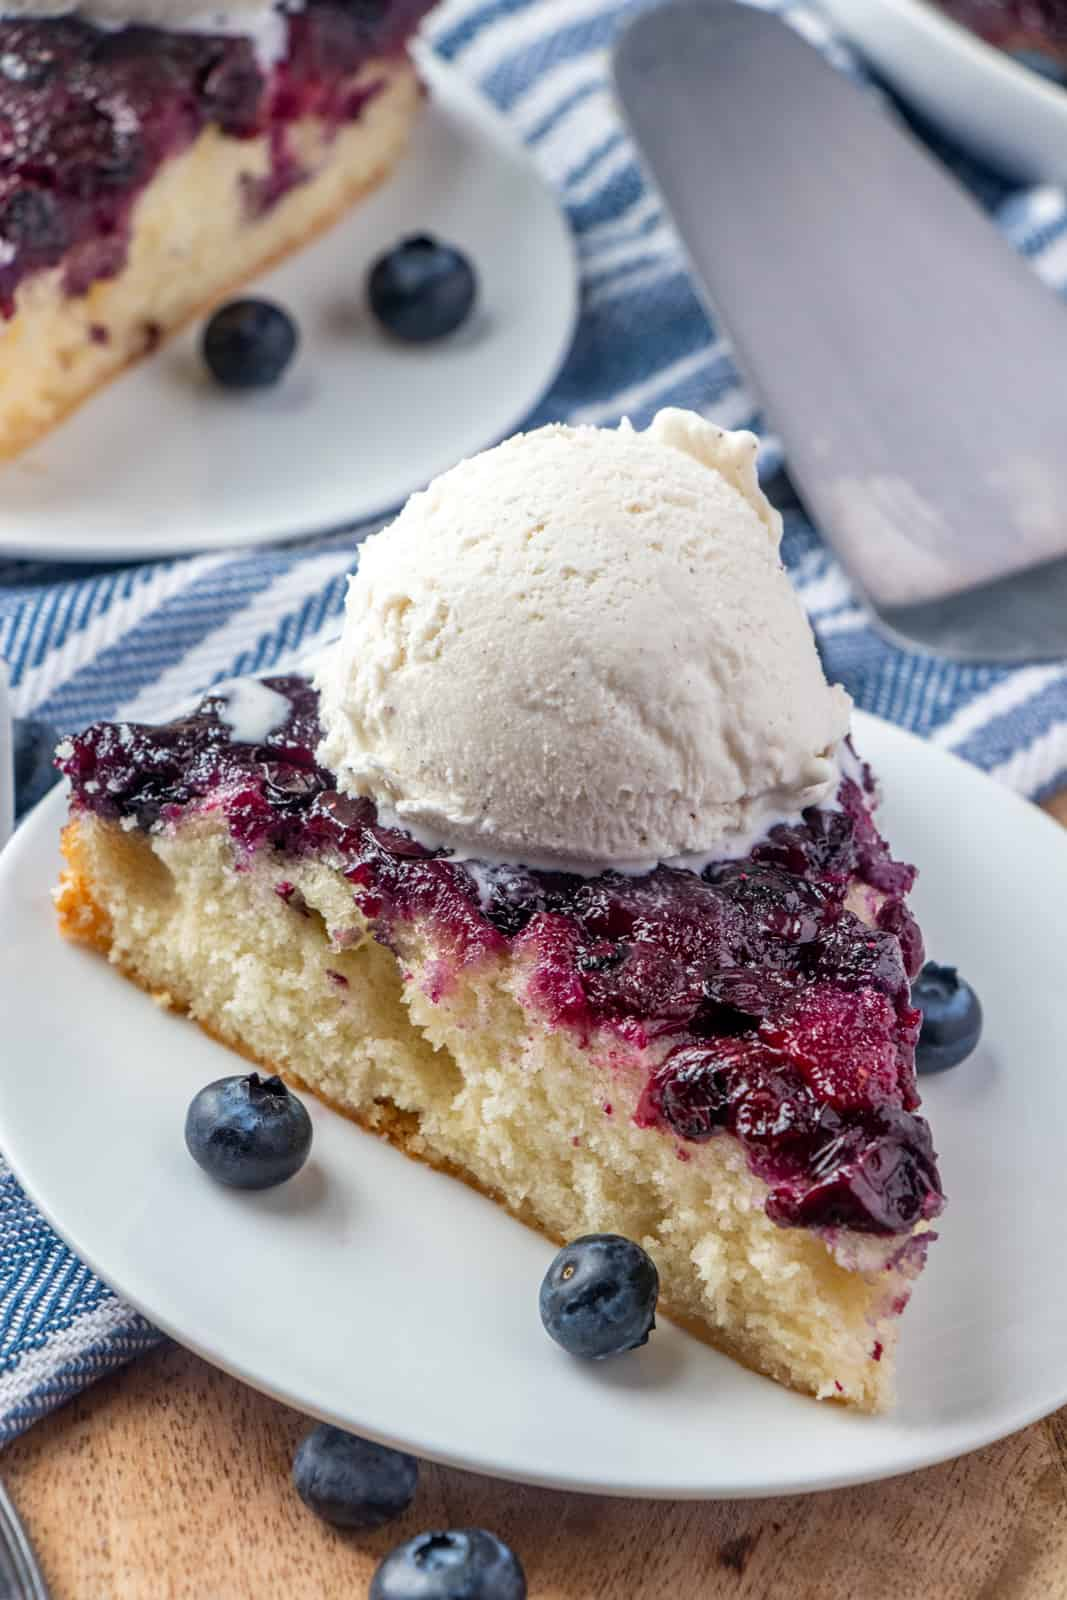 Close up of cake on plate with ice cream melting and blueberries on plate